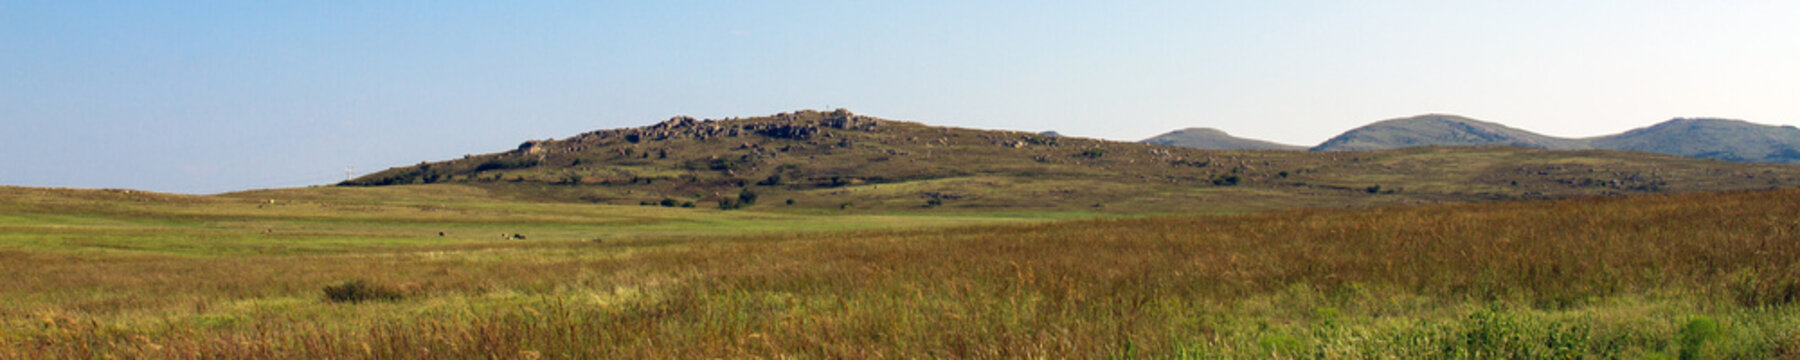 Wide panorama of prairie and distant mountains at Wichita Mountains Wildlife Refuge in Oklahoma